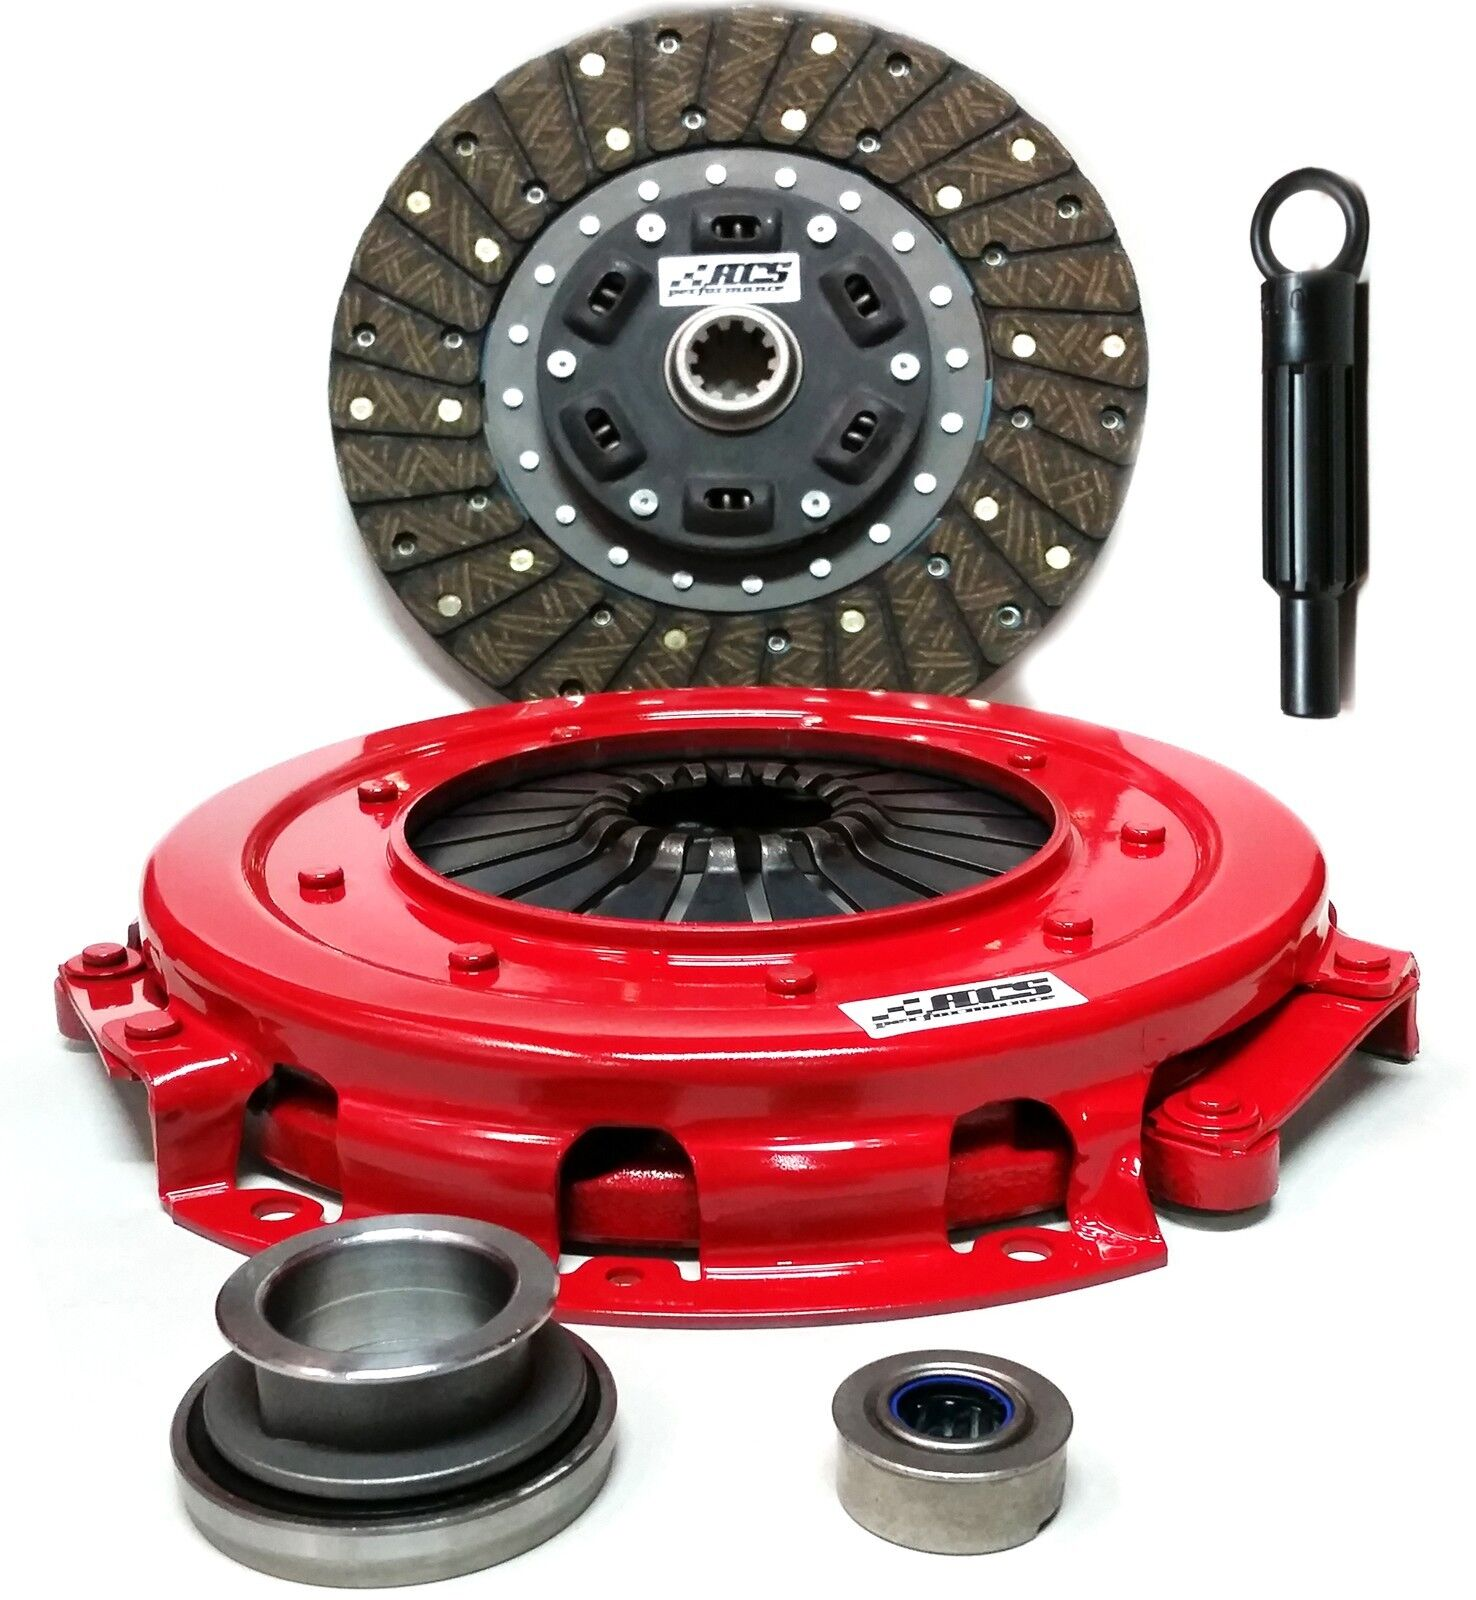 Stage 1 Clutch Kit Set Works With Ford Mustang Gt Lx Cobra Svt 1986-2000 4.6L V8 GAS DOHC 4.6L V8 GAS SOHC 5.0L V8 GAS OHV Naturally Aspirated